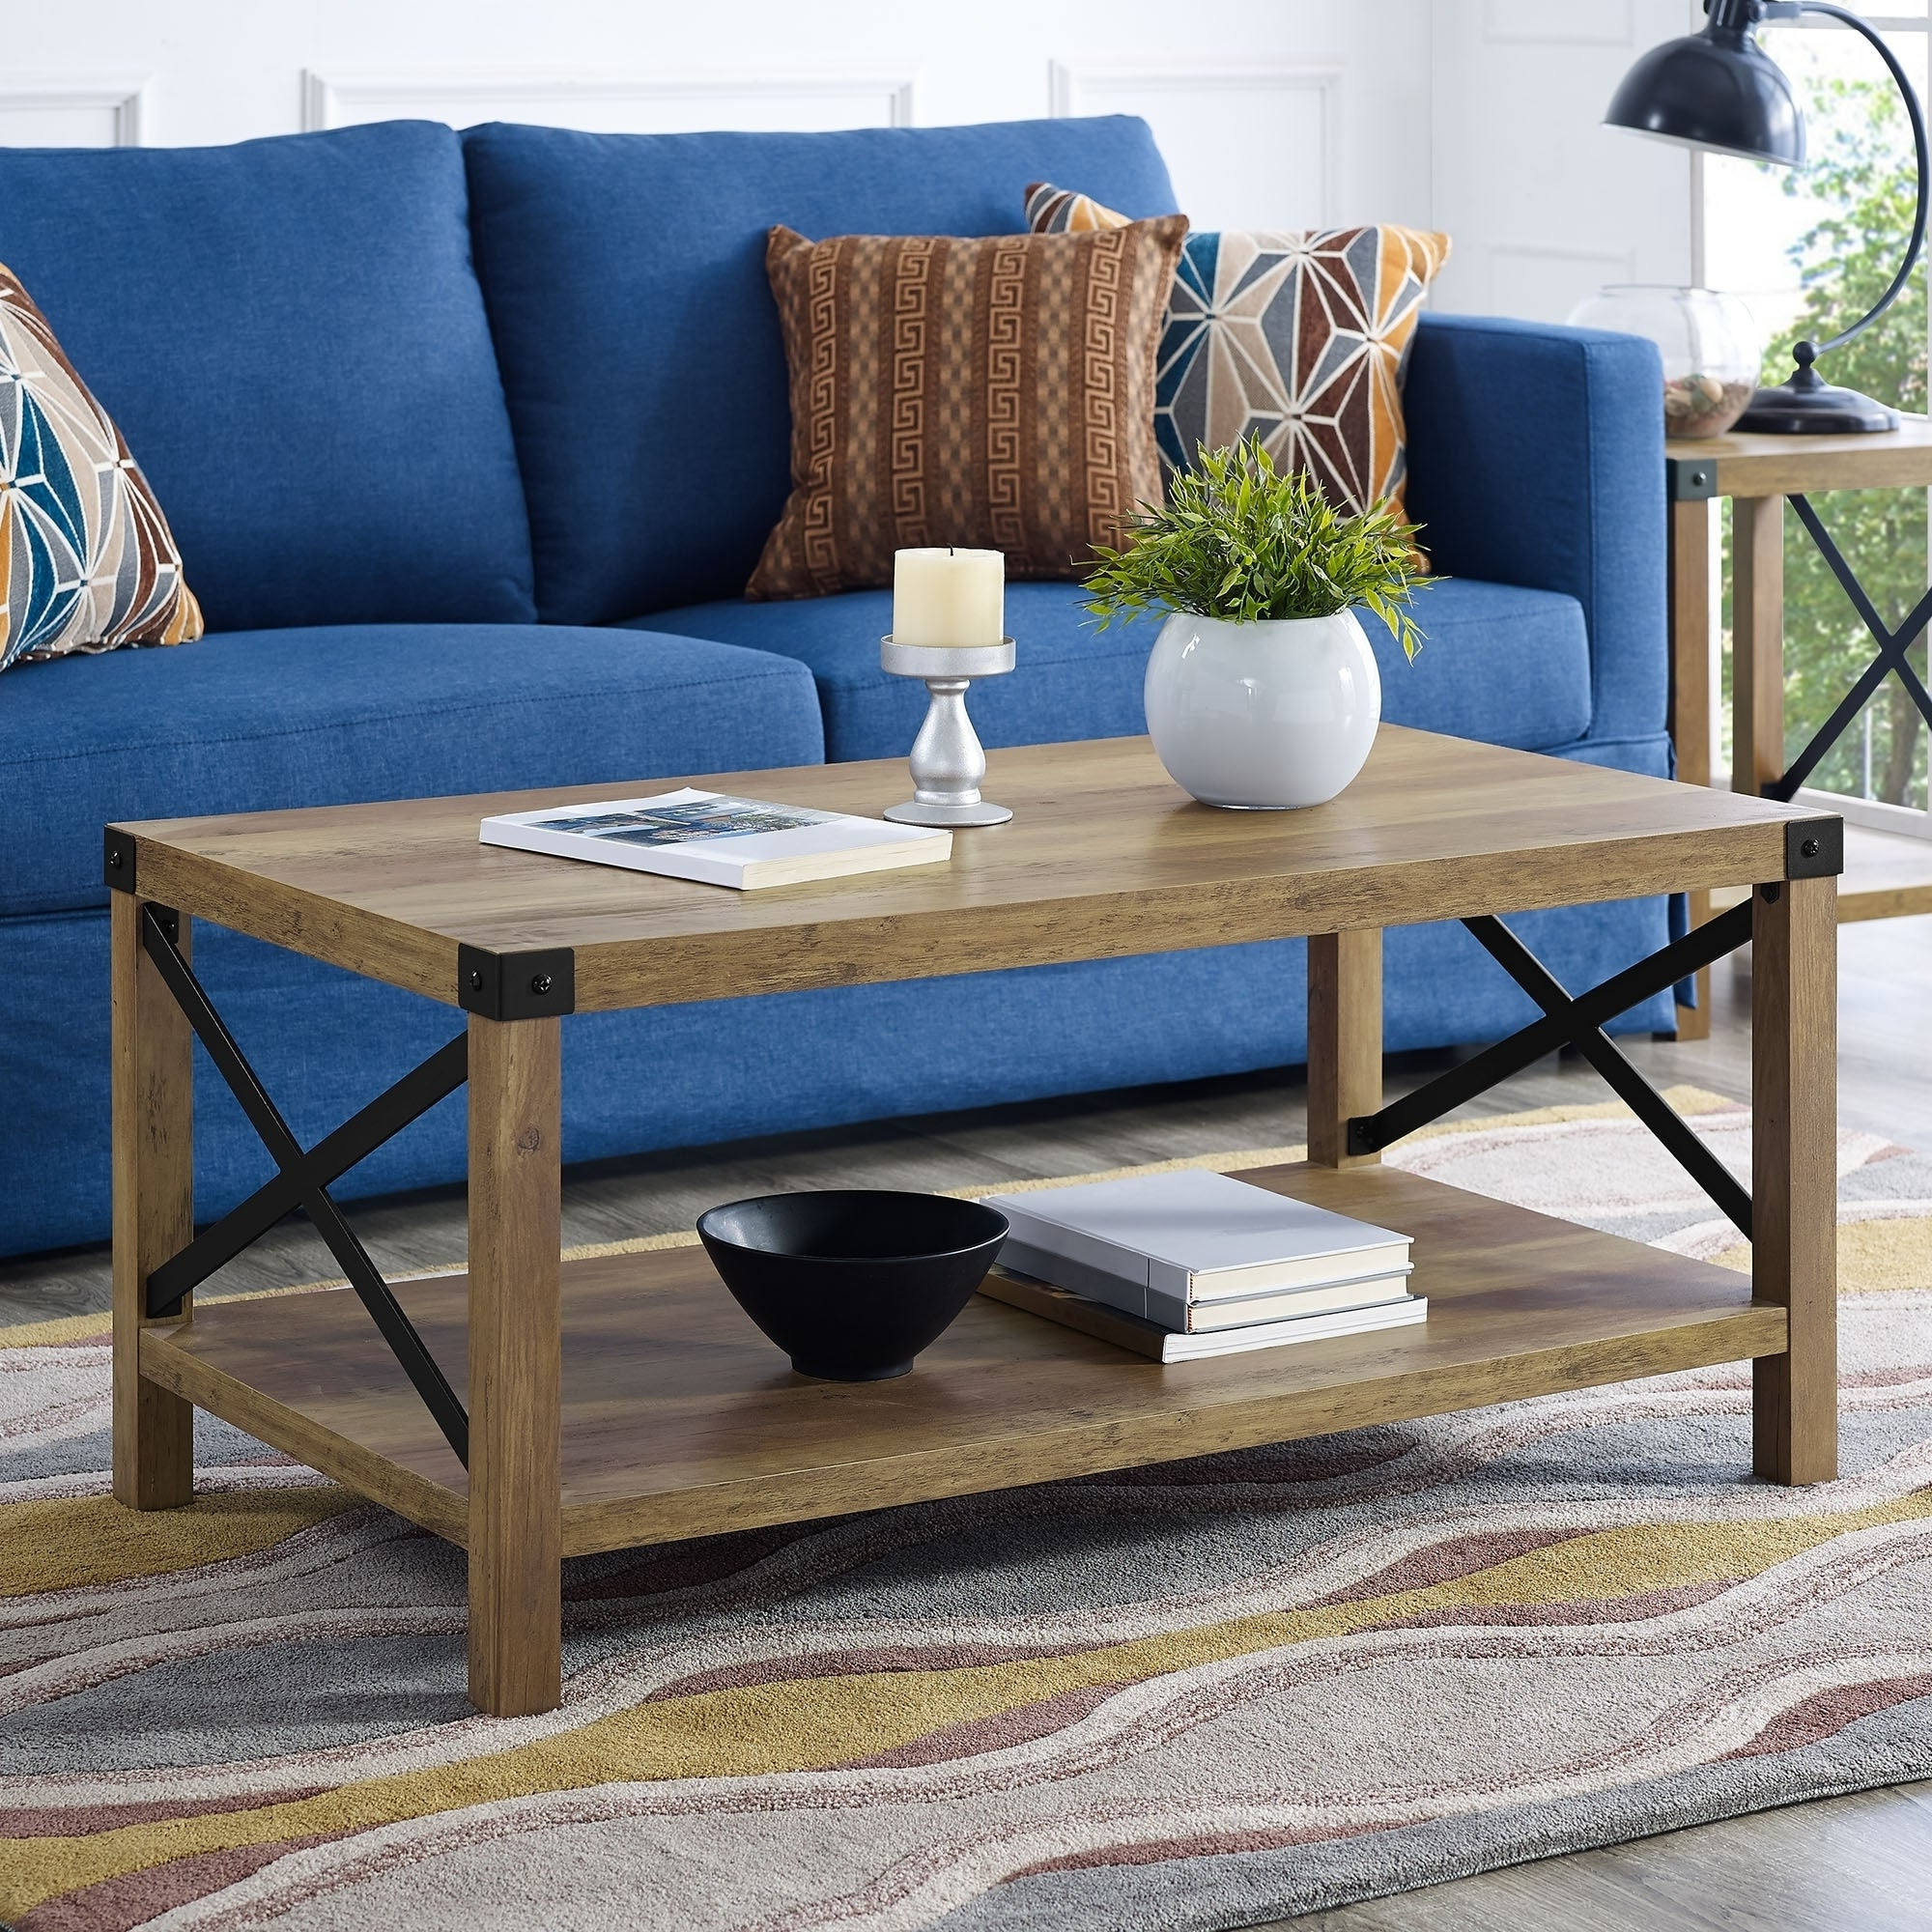 The Gray Barn Kujawa Metal X Coffee Table – 40 X 22 X 18h Within Recent The Gray Barn Kujawa Metal X Coffee Tables – 40 X 22 X 18h (View 8 of 20)